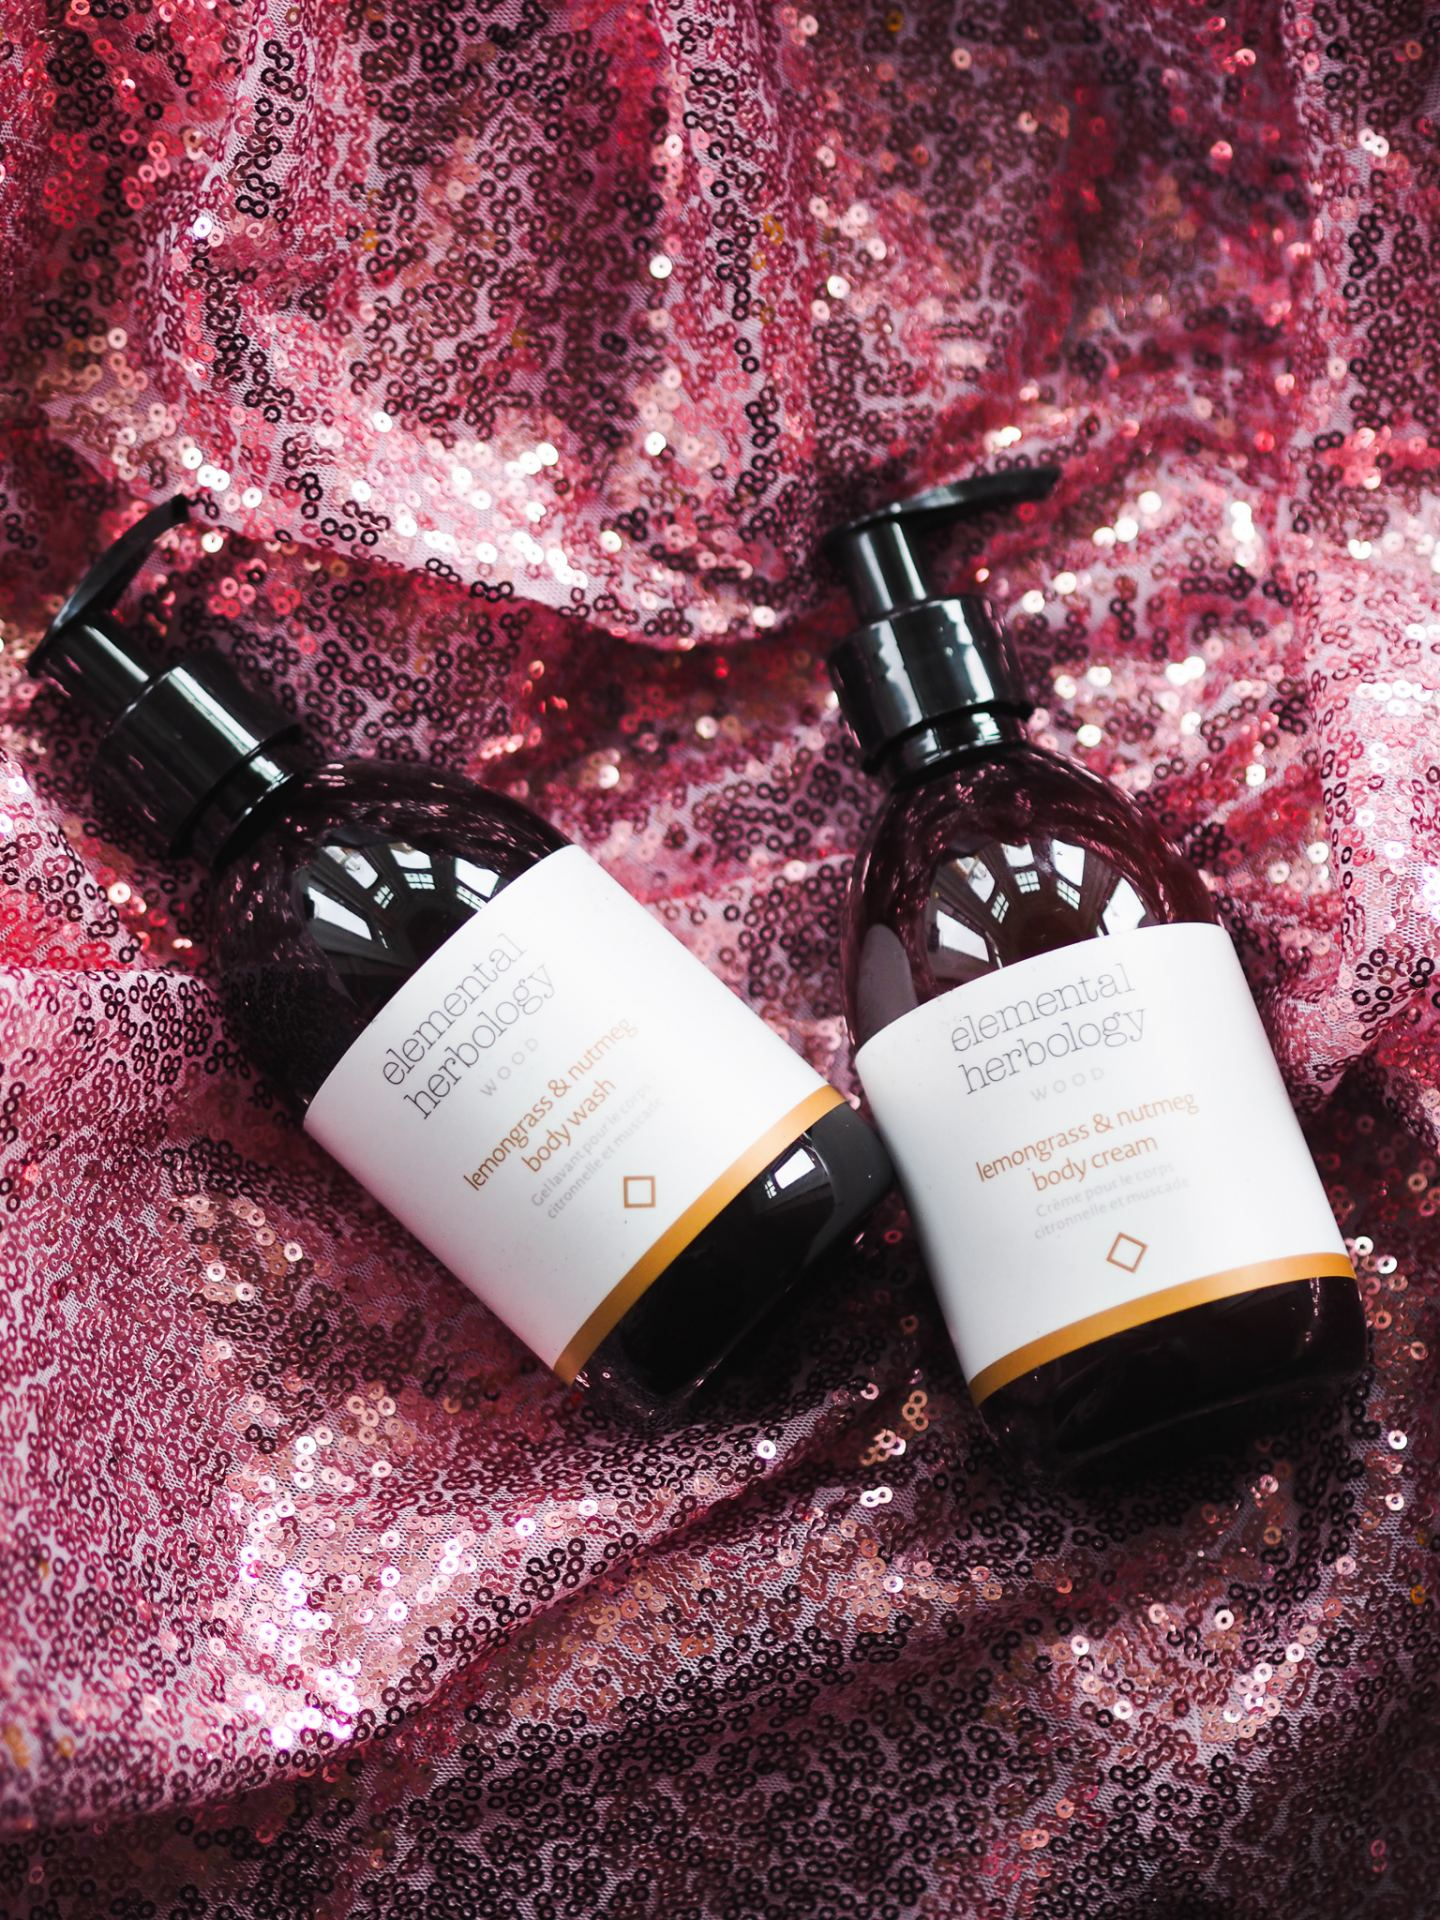 elemental herbology body wash and body lotion